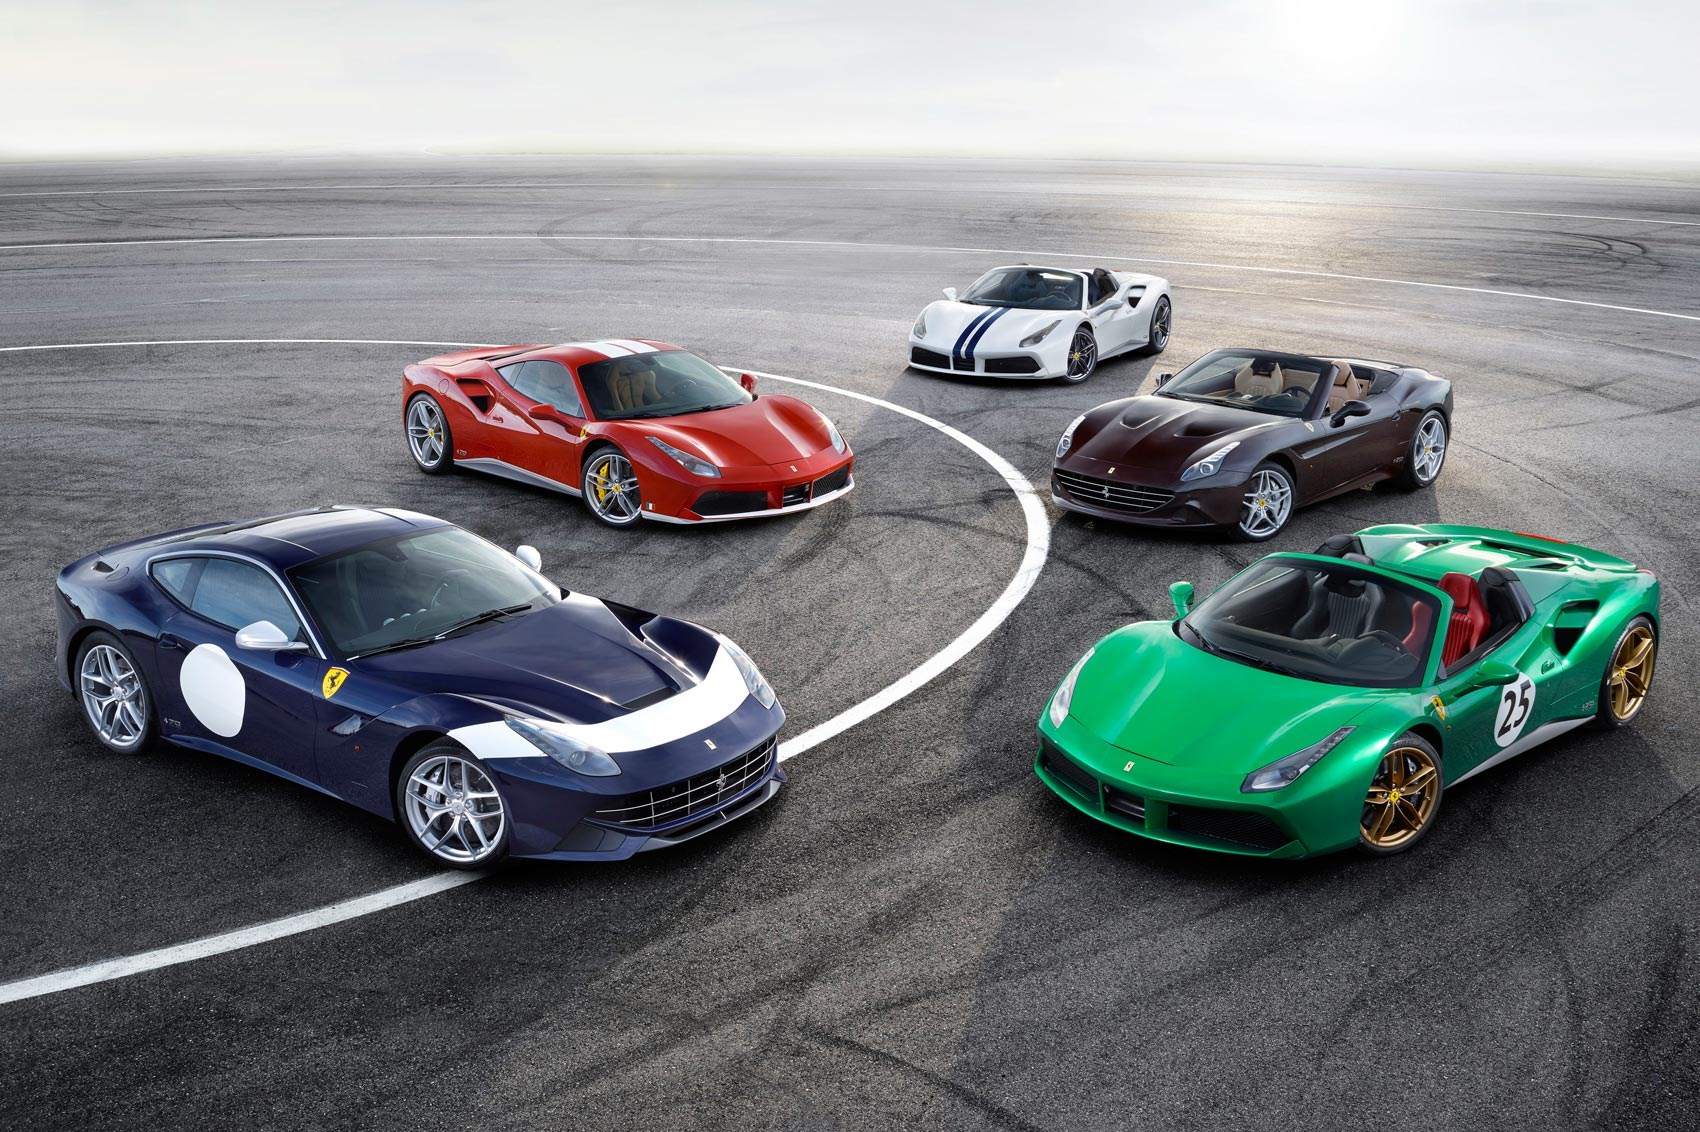 Ferrari Launches 70 Year Anniversary Models At Paris 2016 ...